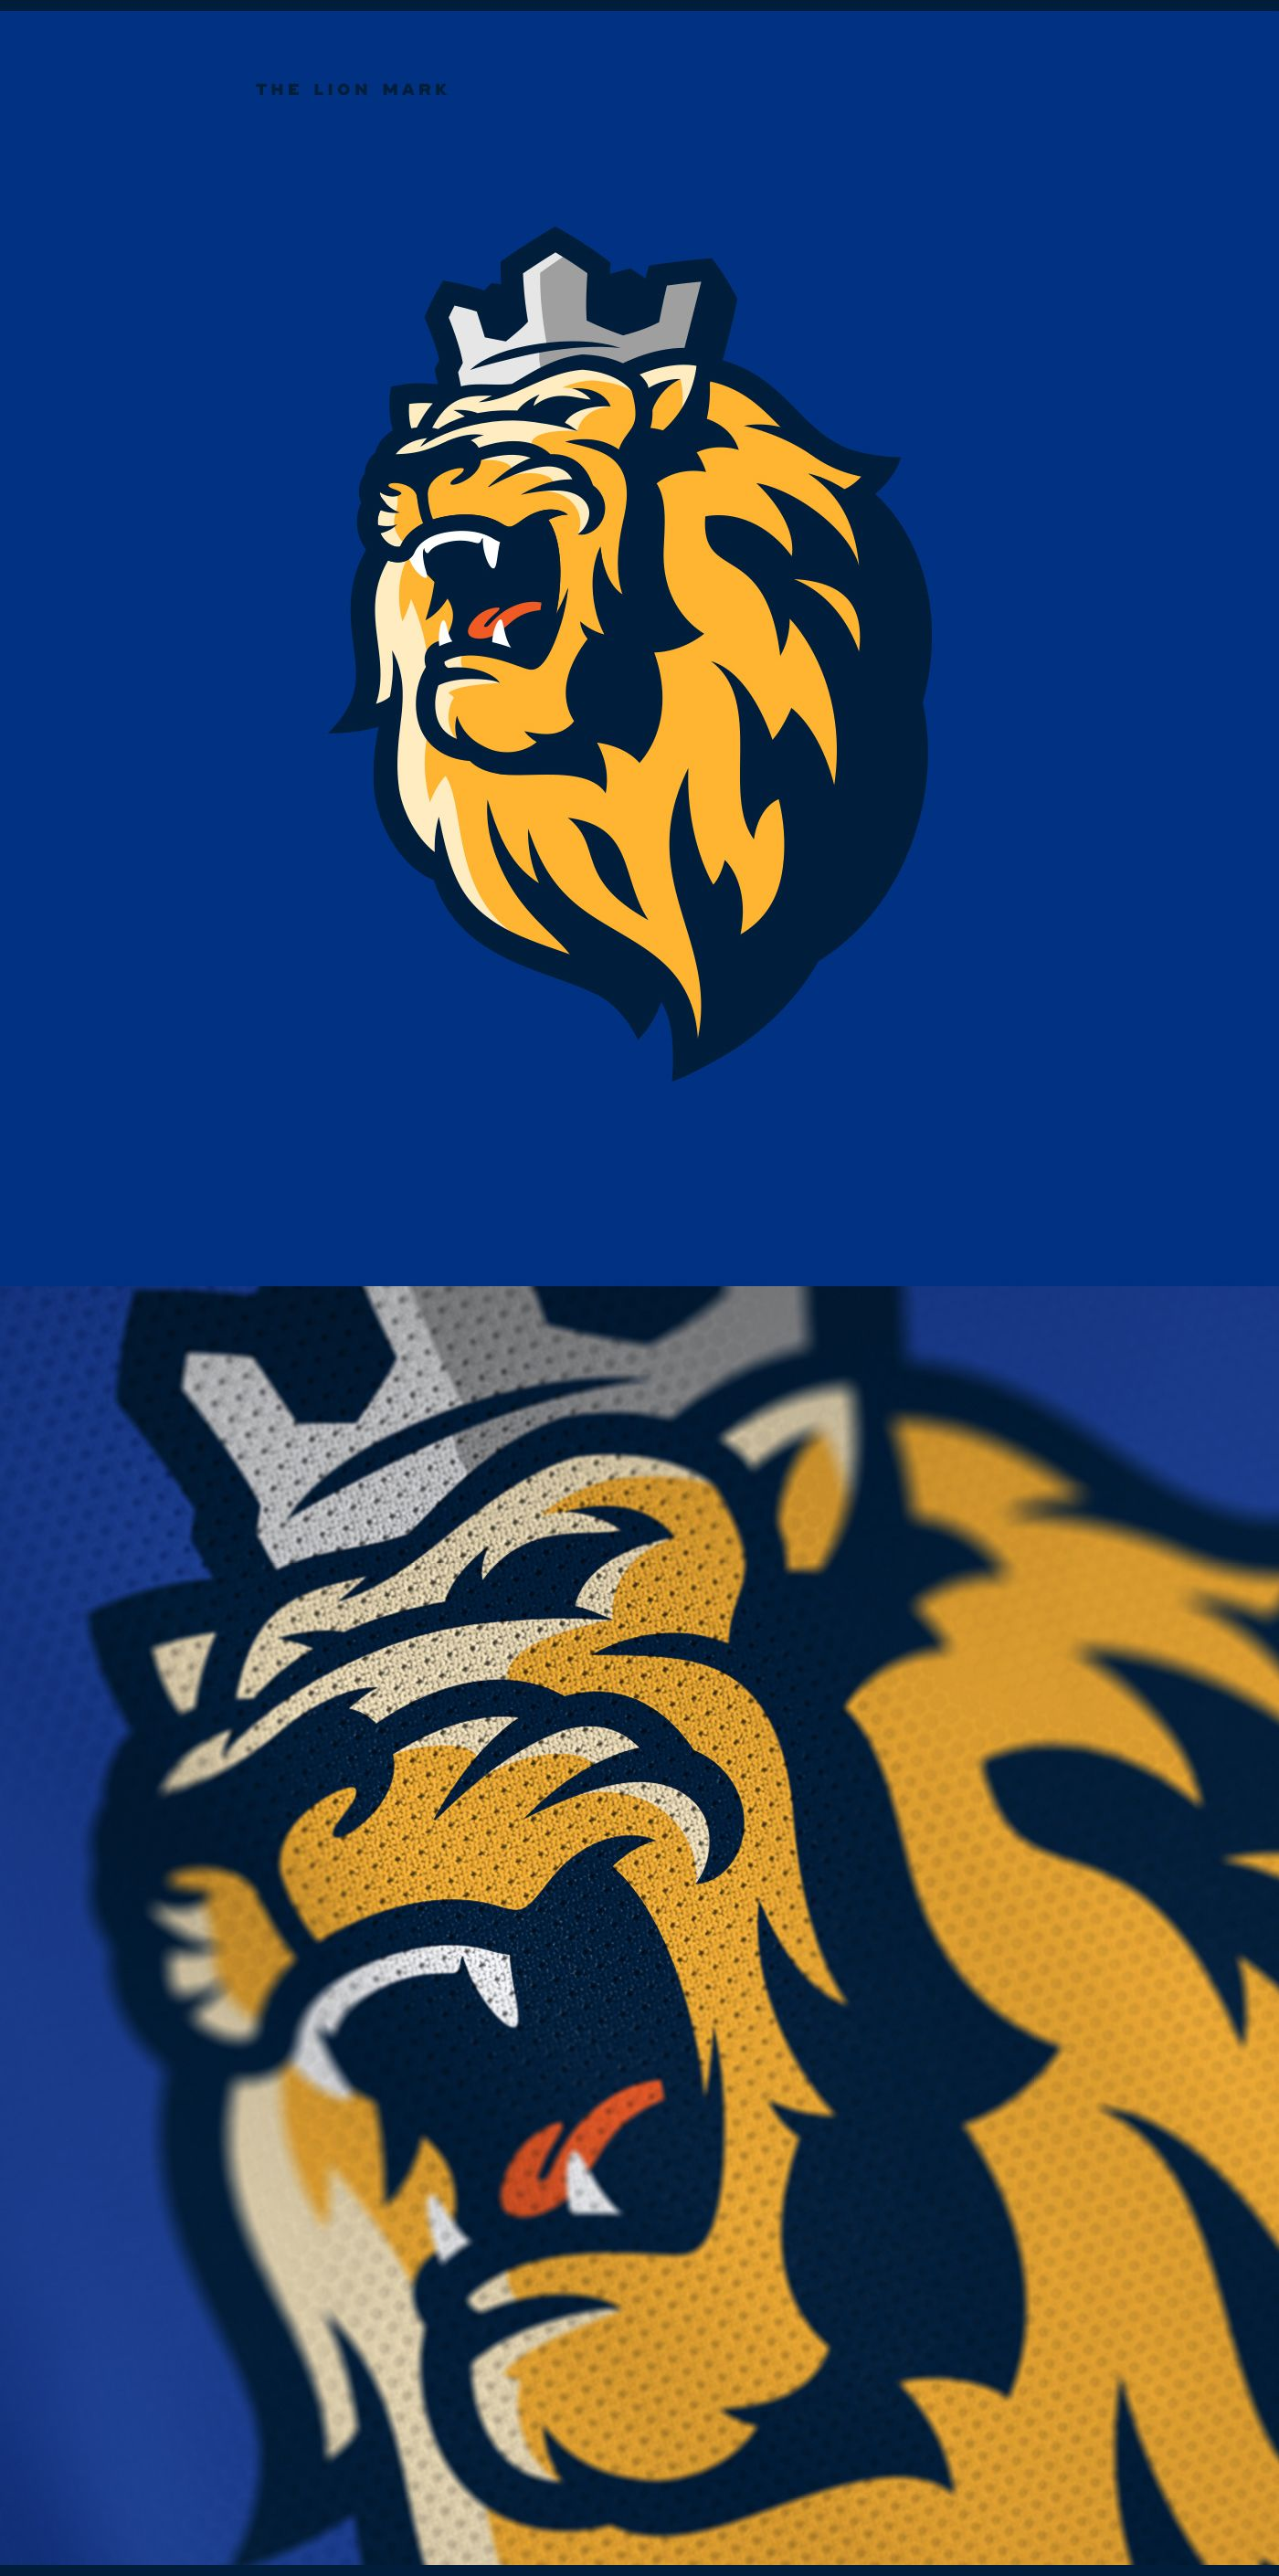 Rebranding Concept Of The Most Biggest And Iconic Sports Brand In Finland The Lions The Finnish Men S National Ice Hockey Team Logo Pinterest Sports